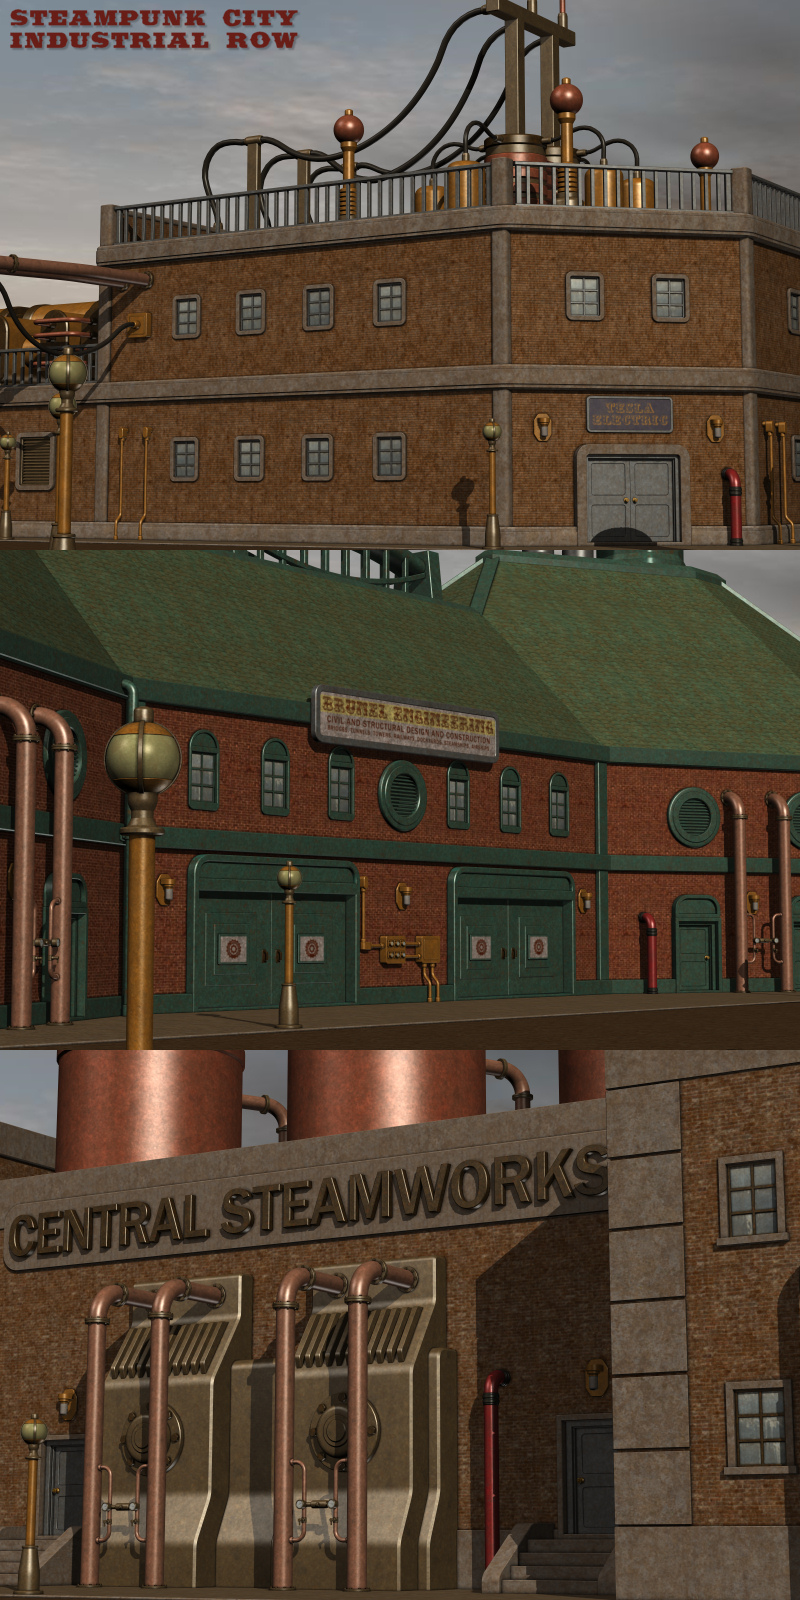 Steampunk City Industrial Row